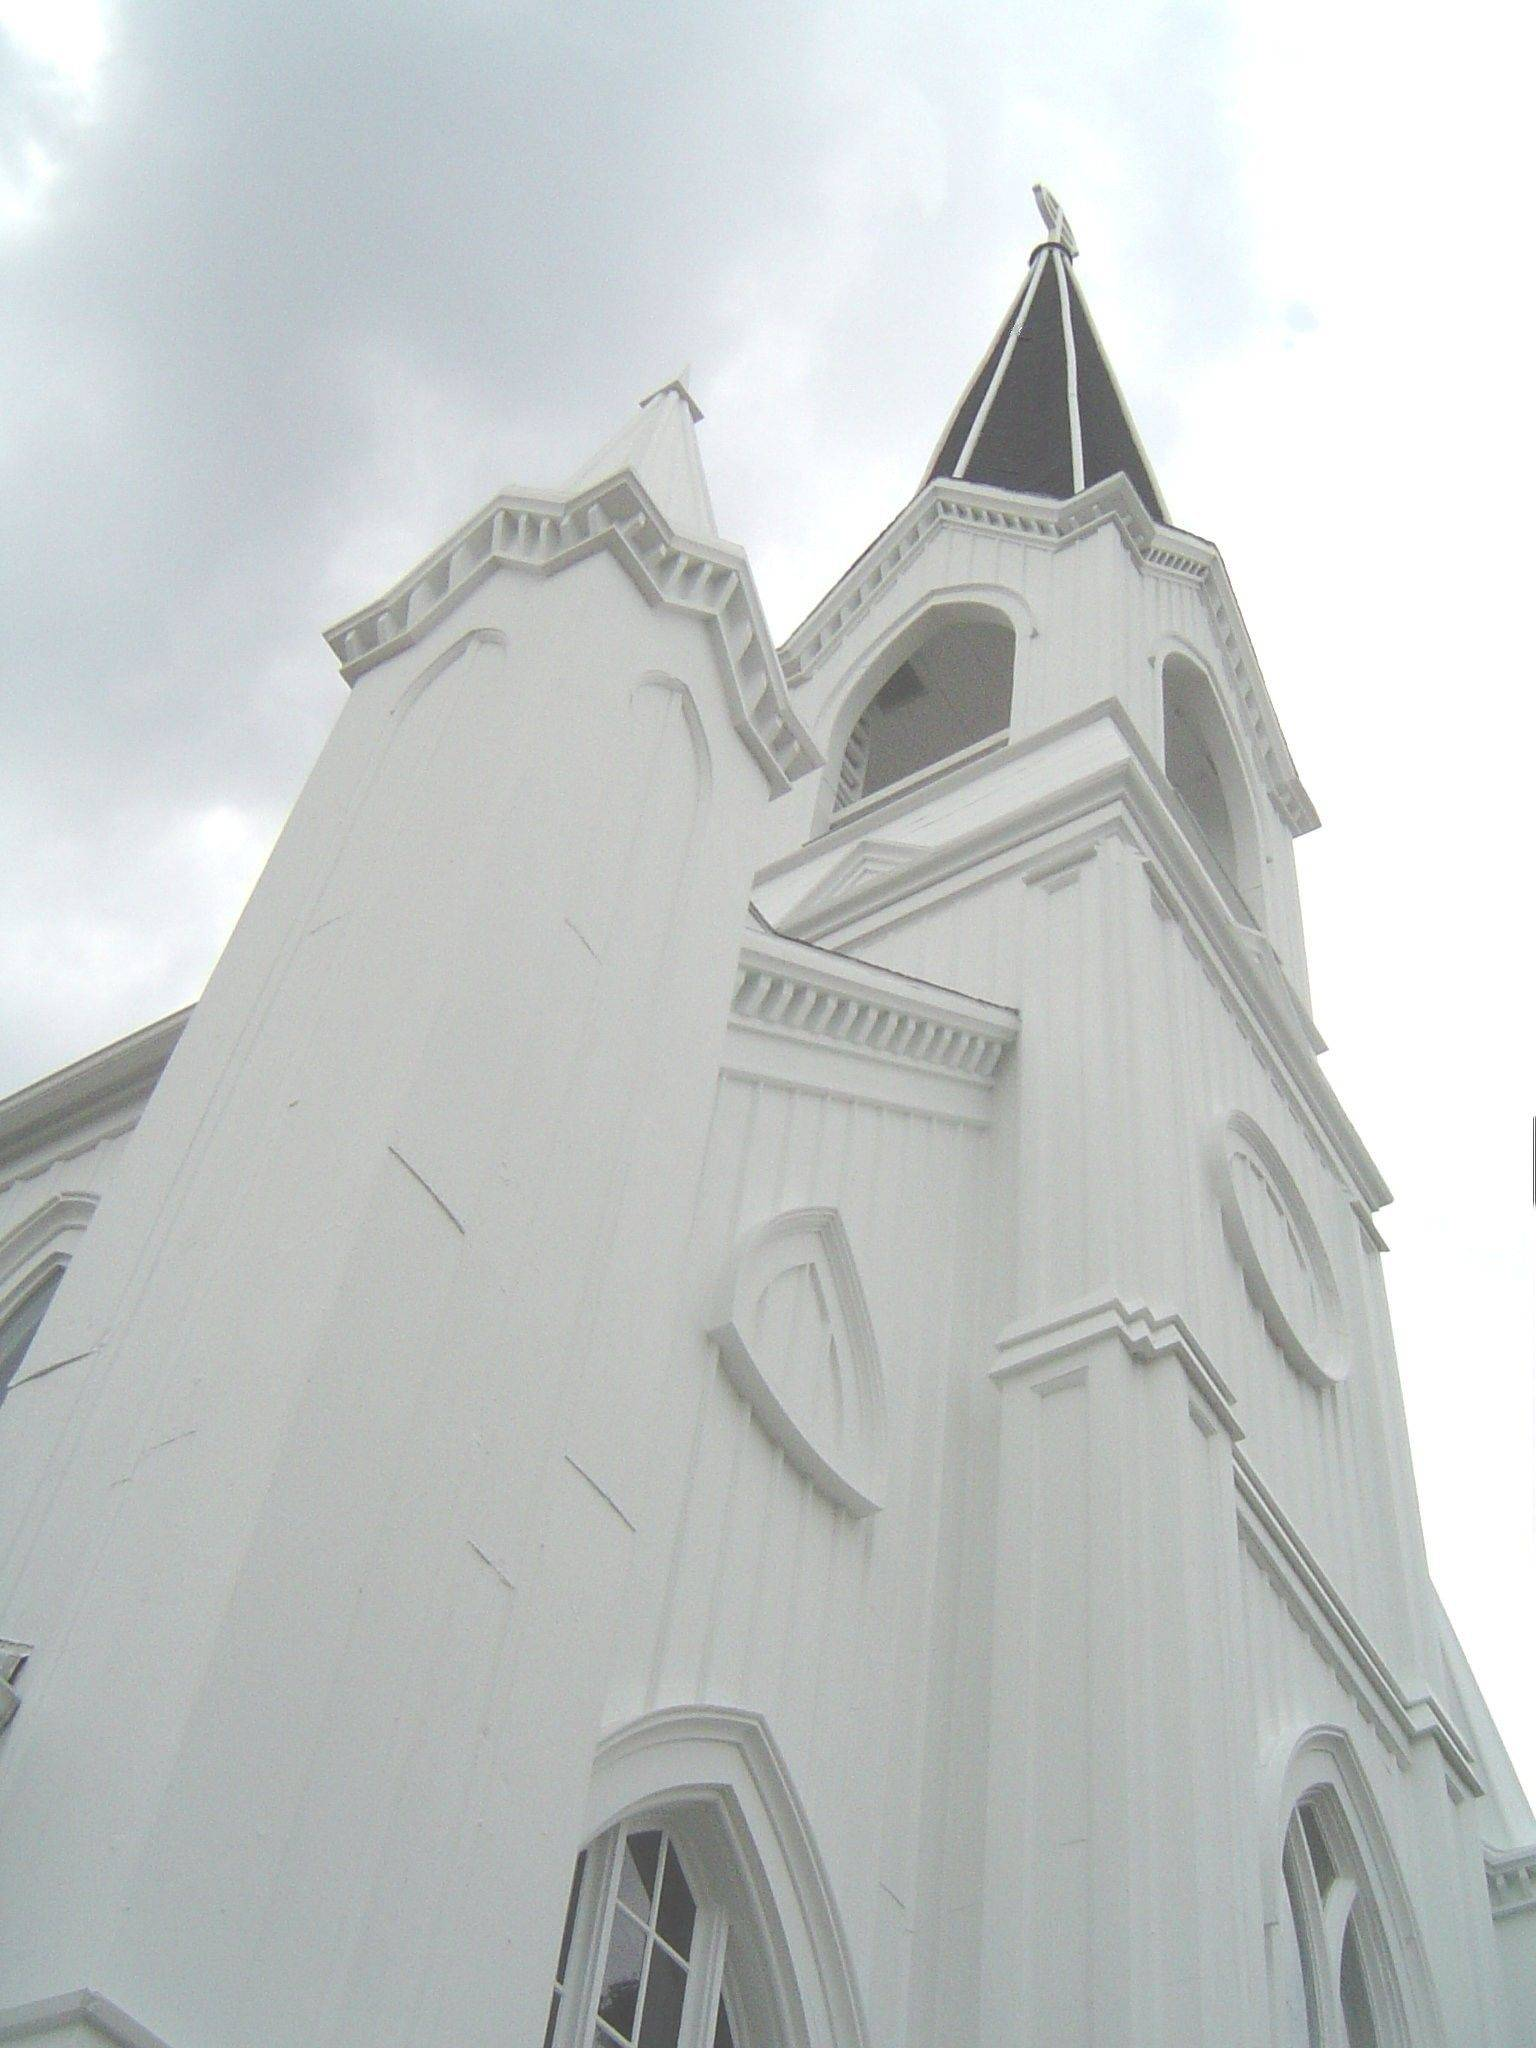 The Maple Street Chapel has served many community functions since 1870 when it was built at the corner of Main and Maple streets in downtown Lombard.